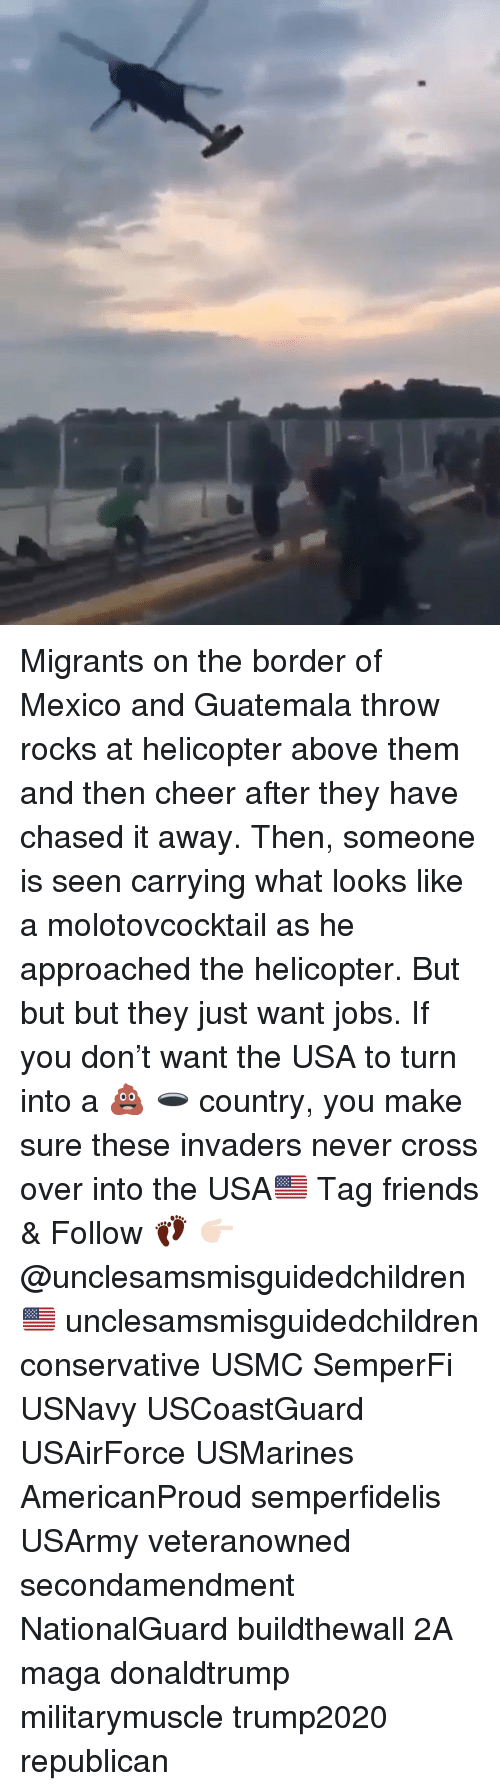 donaldtrump: Migrants on the border of Mexico and Guatemala throw rocks at helicopter above them and then cheer after they have chased it away. Then, someone is seen carrying what looks like a molotovcocktail as he approached the helicopter. But but but they just want jobs. If you don't want the USA to turn into a 💩 🕳 country, you make sure these invaders never cross over into the USA🇺🇸 Tag friends & Follow 👣 👉🏻 @unclesamsmisguidedchildren 🇺🇸 unclesamsmisguidedchildren conservative USMC SemperFi USNavy USCoastGuard USAirForce USMarines AmericanProud semperfidelis USArmy veteranowned secondamendment NationalGuard buildthewall 2A maga donaldtrump militarymuscle trump2020 republican